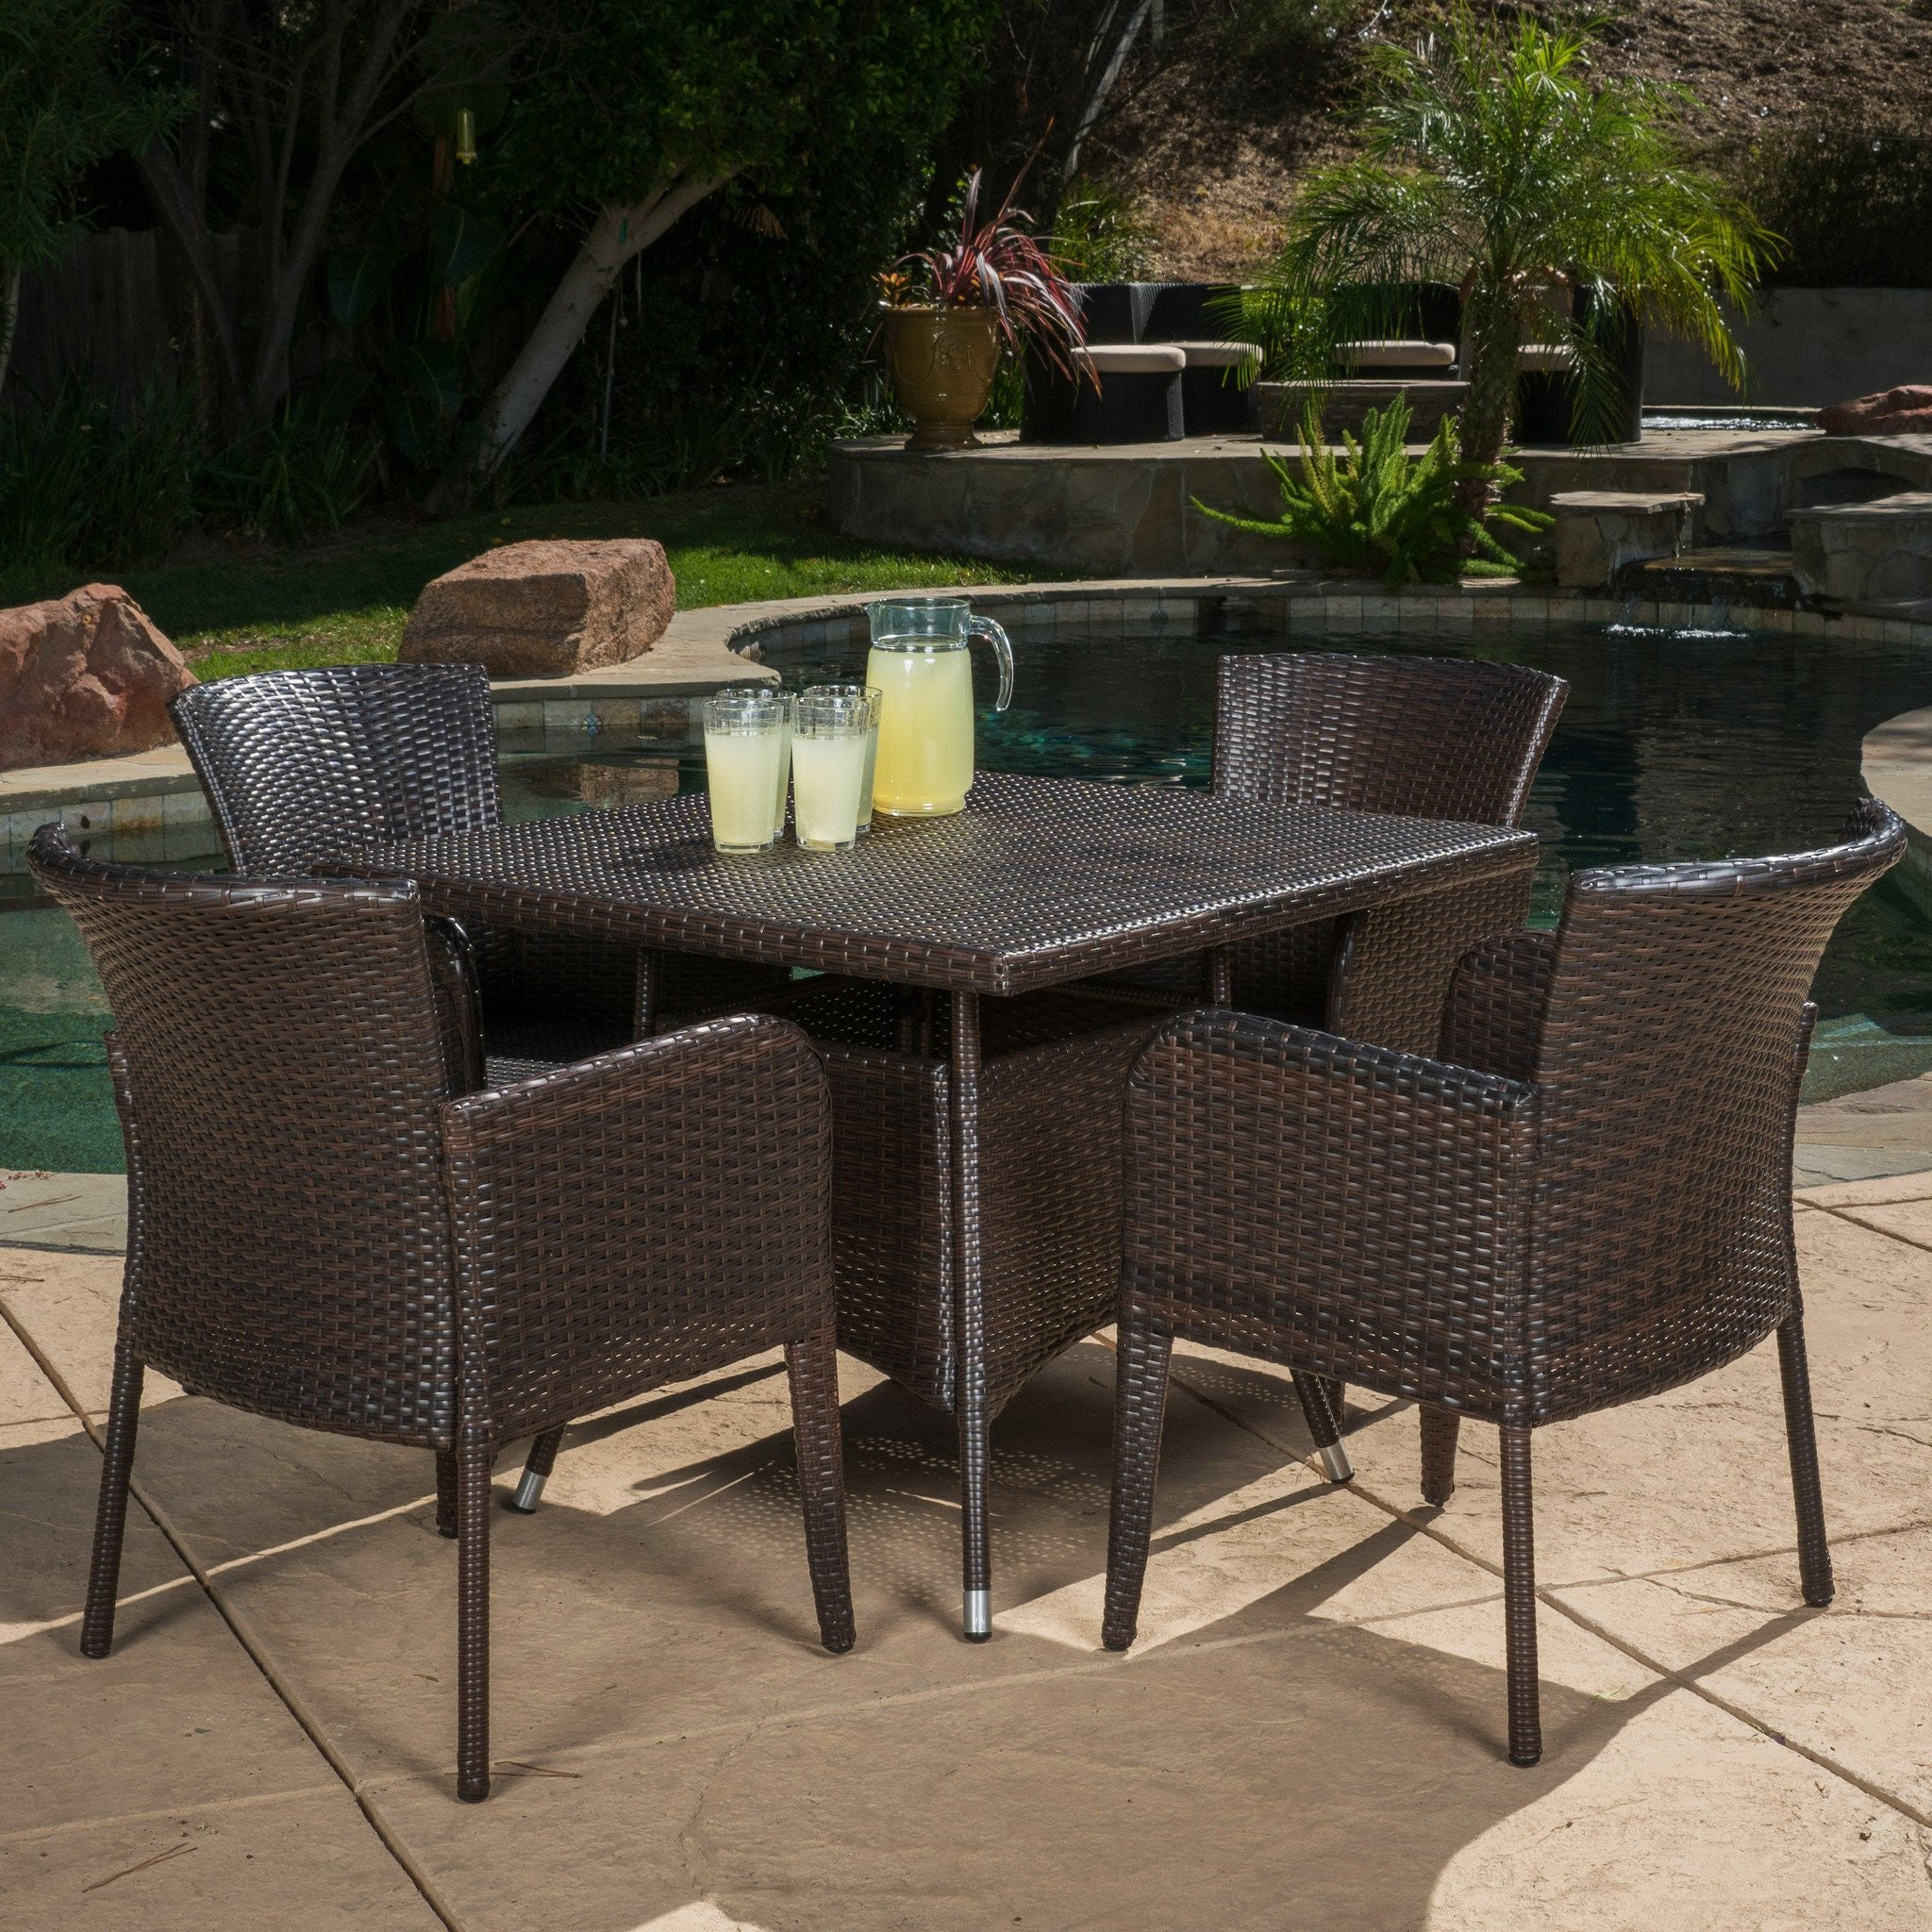 Gdf Studio Outdoor Brown Wicker Dining Set Clinton